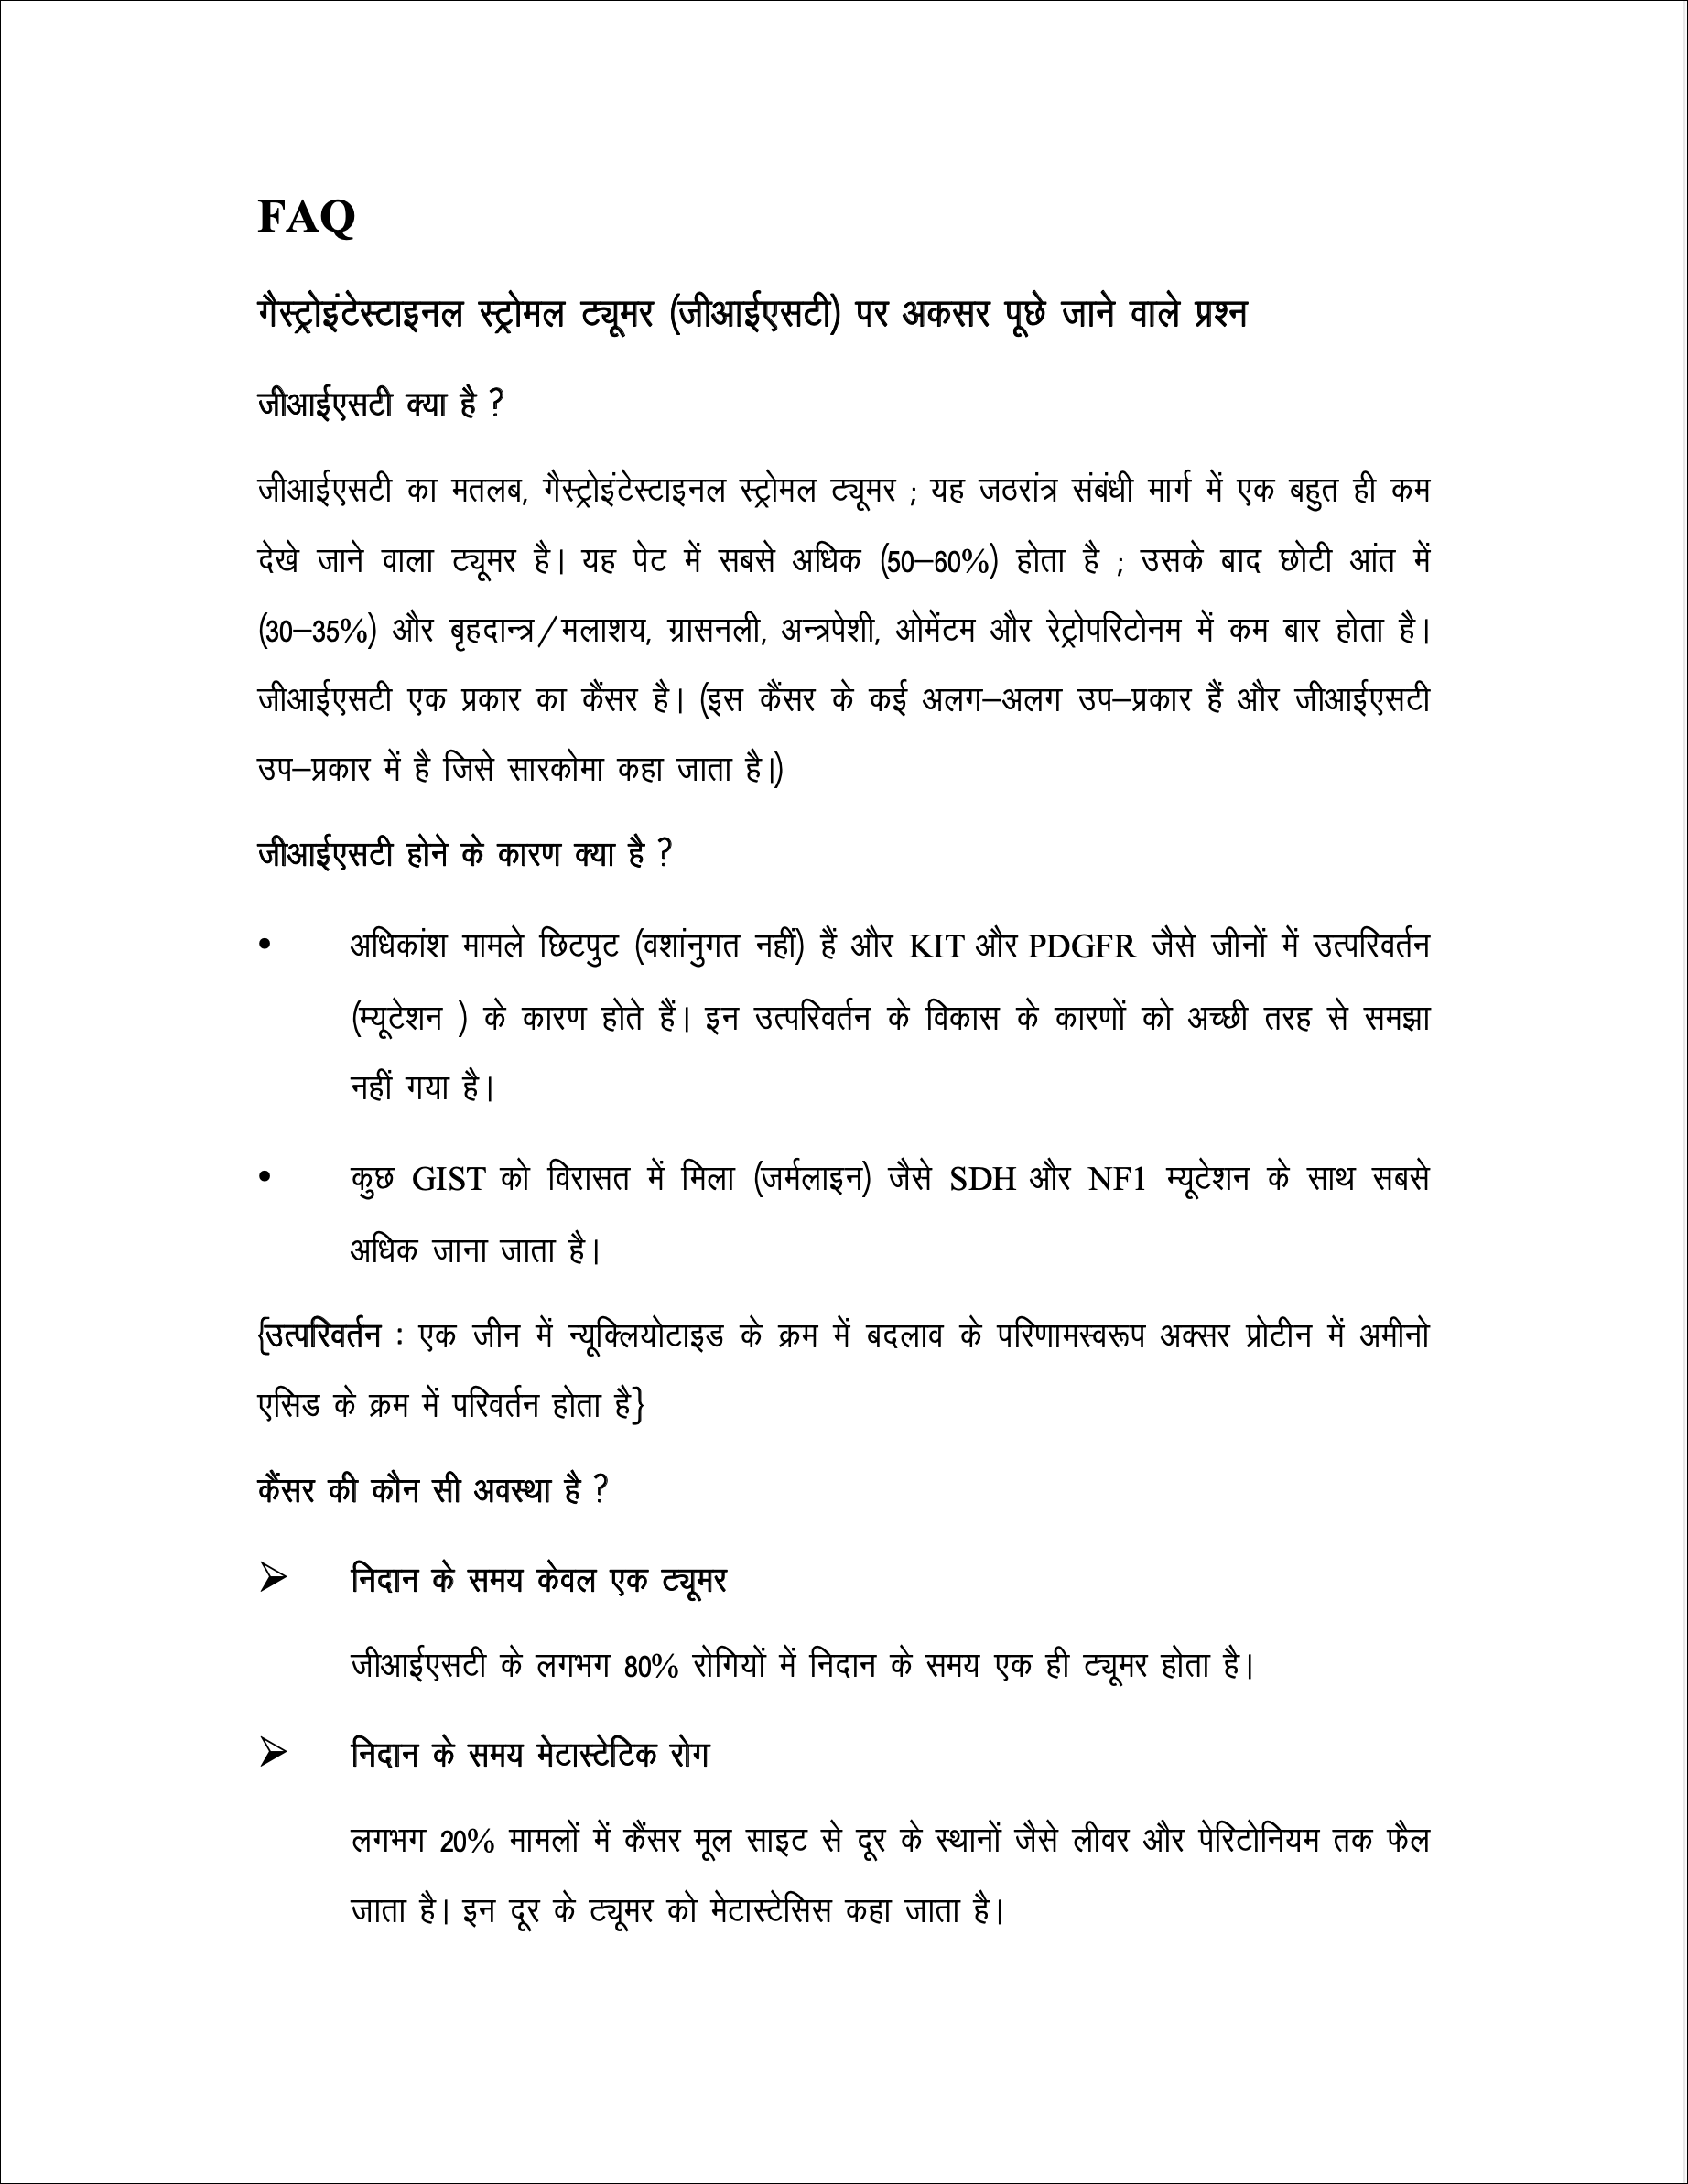 Hindi GIST FAQs Sachin Sarcoma Society translation